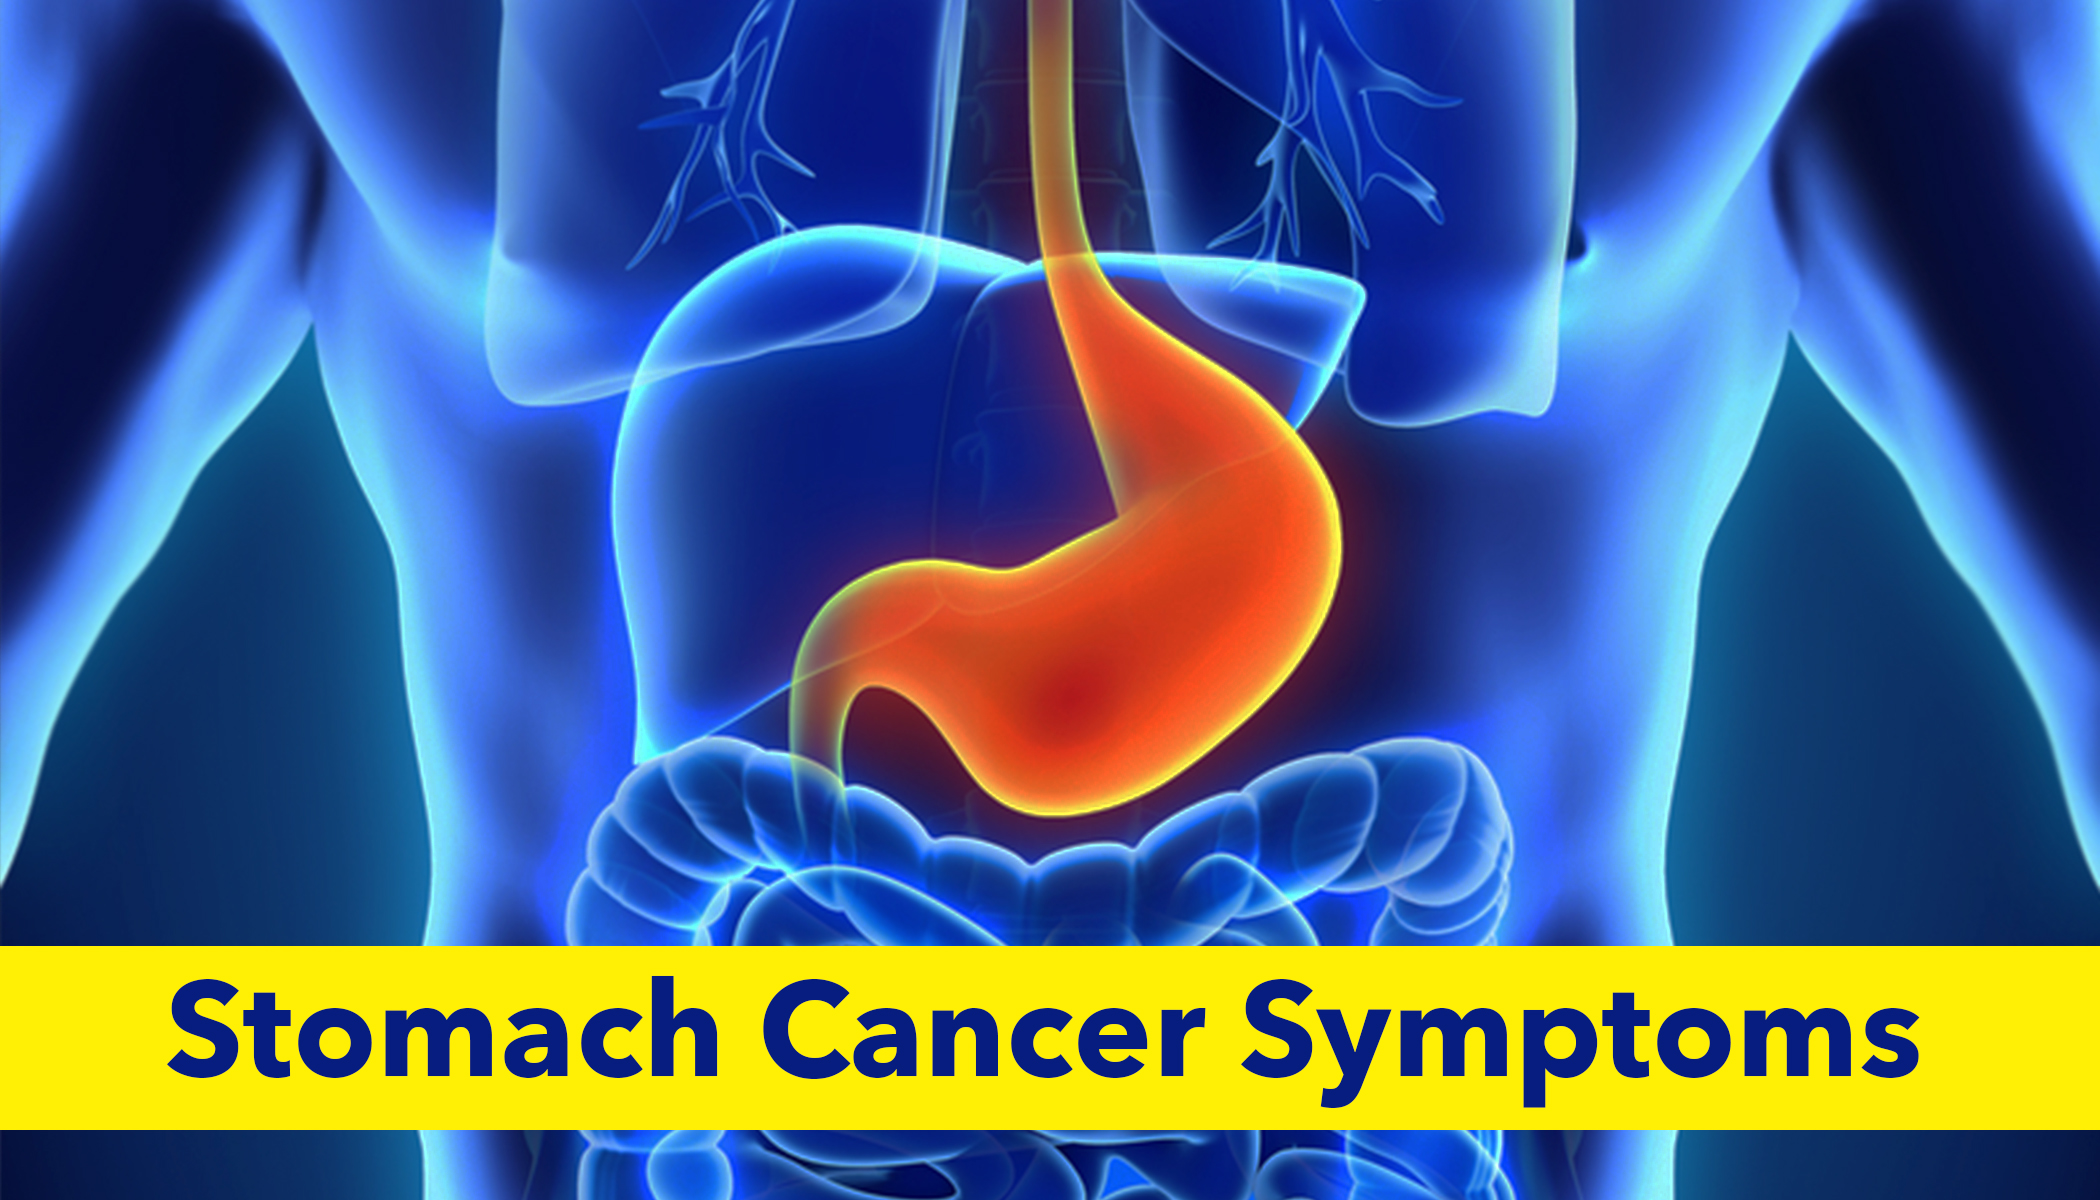 8 Stomach Cancer Signs You Shouldn't Ignore